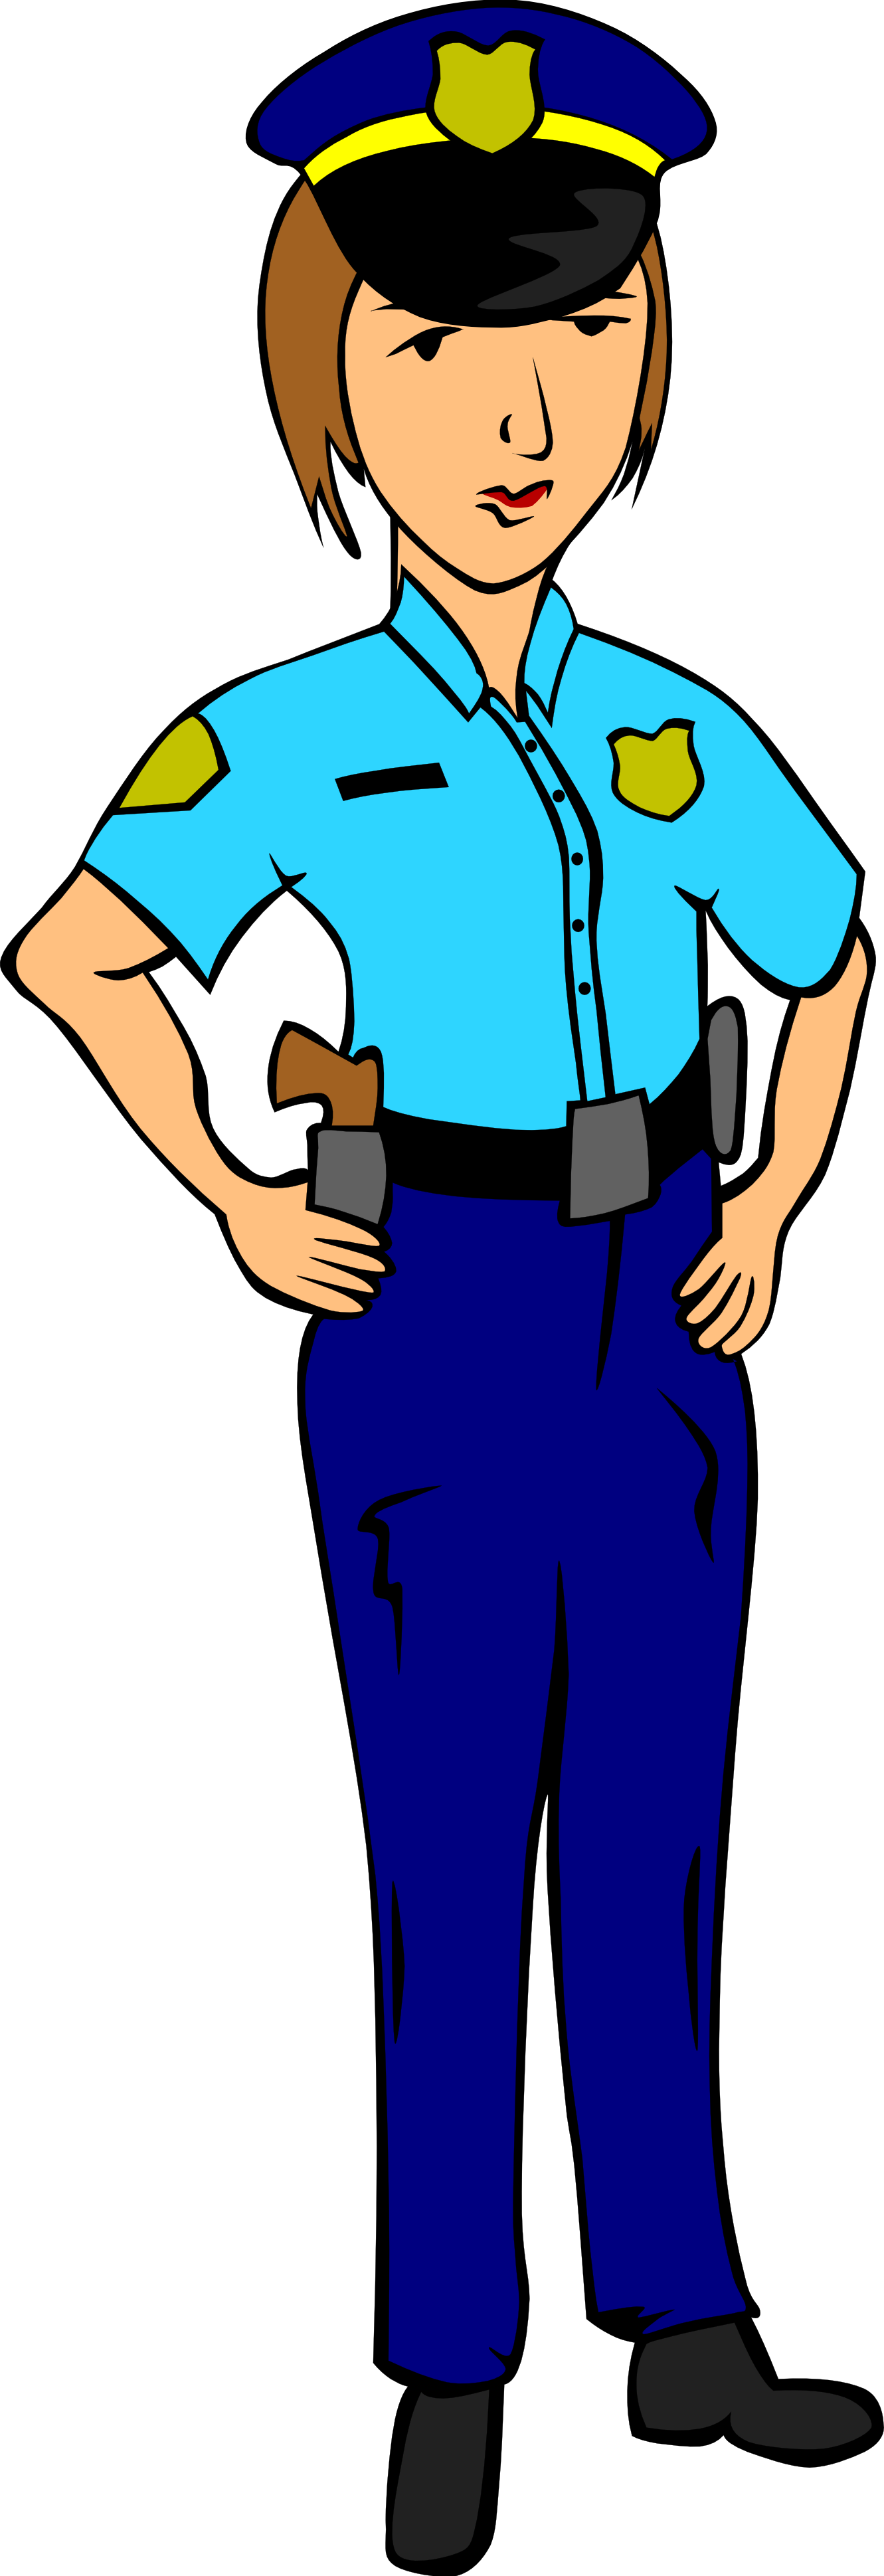 Firefighter clipart police officer Clipart Panda Police Clipart Female